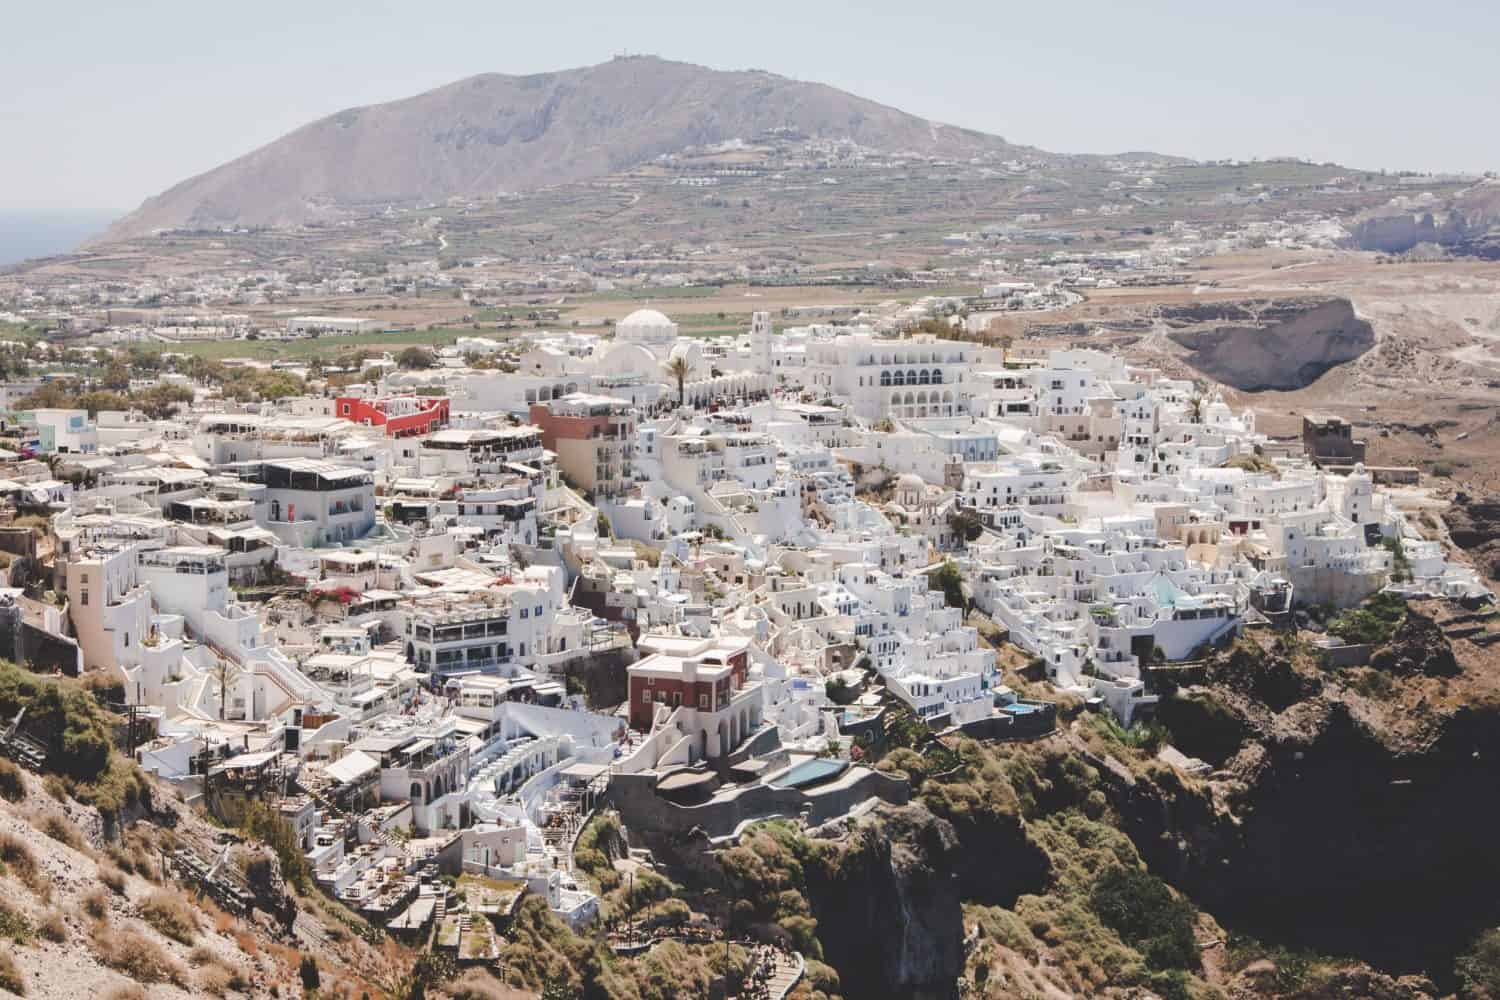 The Greek island of Santorini is on a volcanic cliff with lots of white buildings.